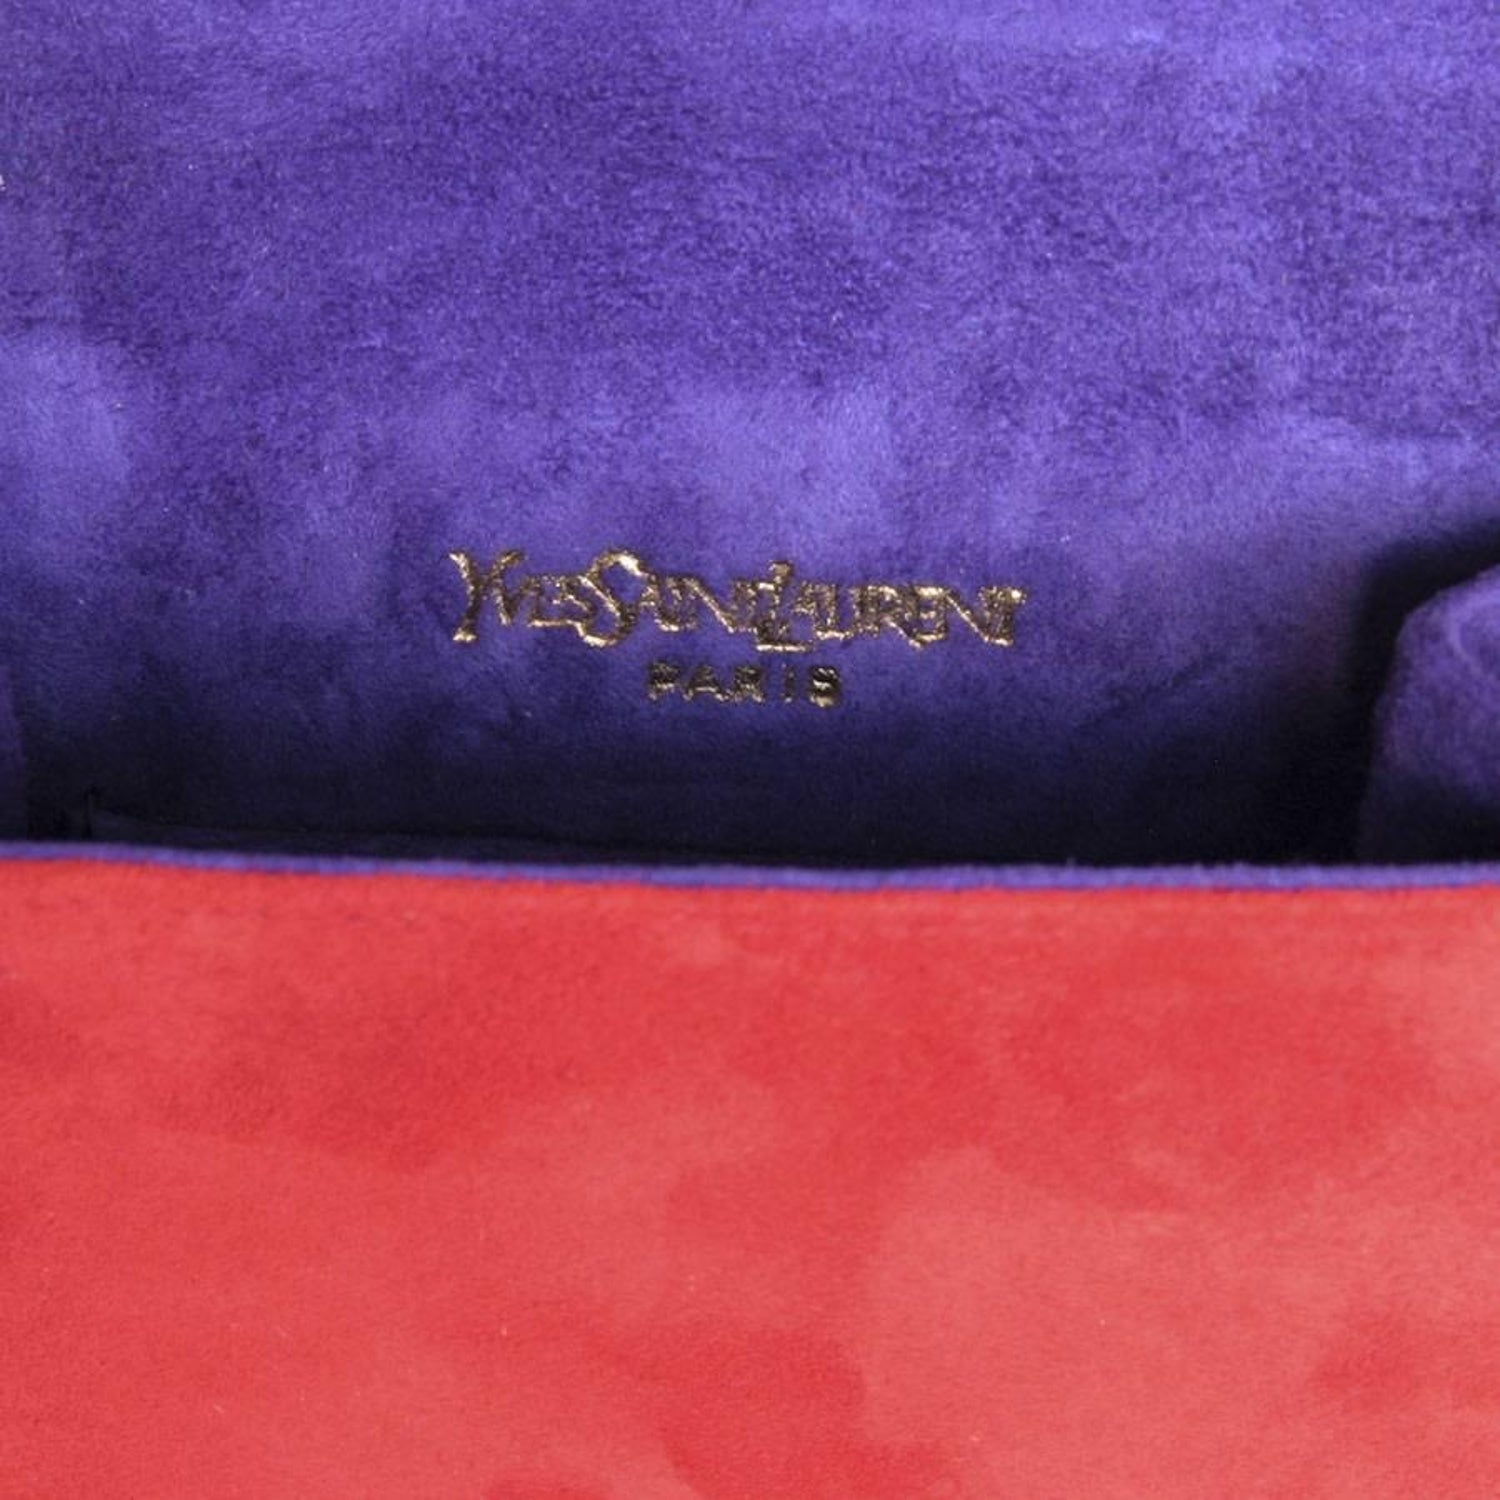 32ff872f7f YSL YVES SAINT LAURENT Vintage Bag in Red and Purple Suede at 1stdibs